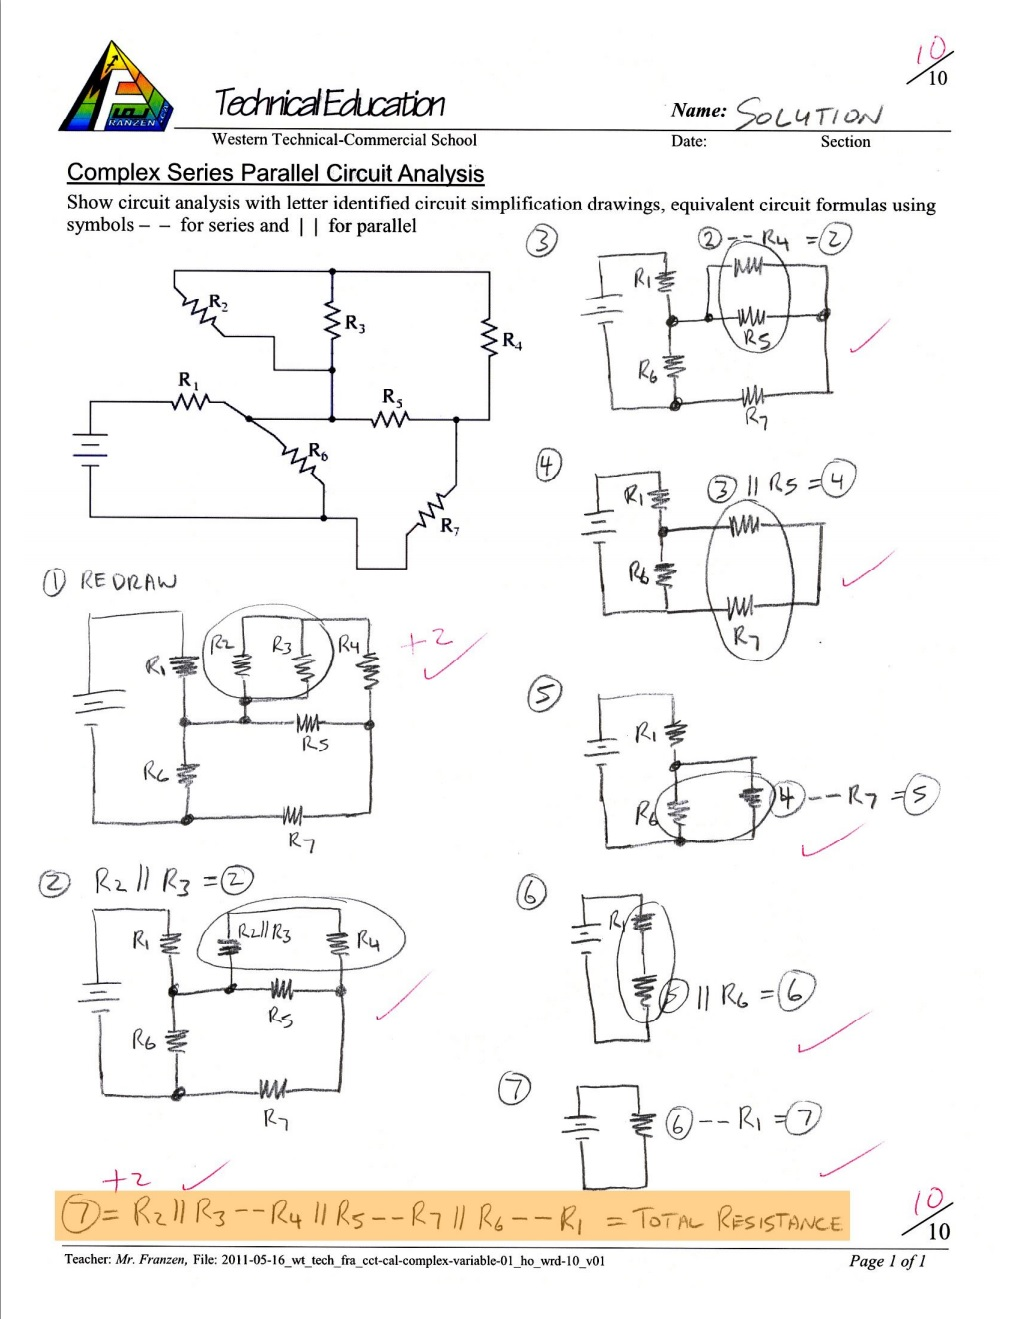 Unit 1 Computer Engineering Technology Robotics and Control Systems – Series Parallel Circuit Worksheet